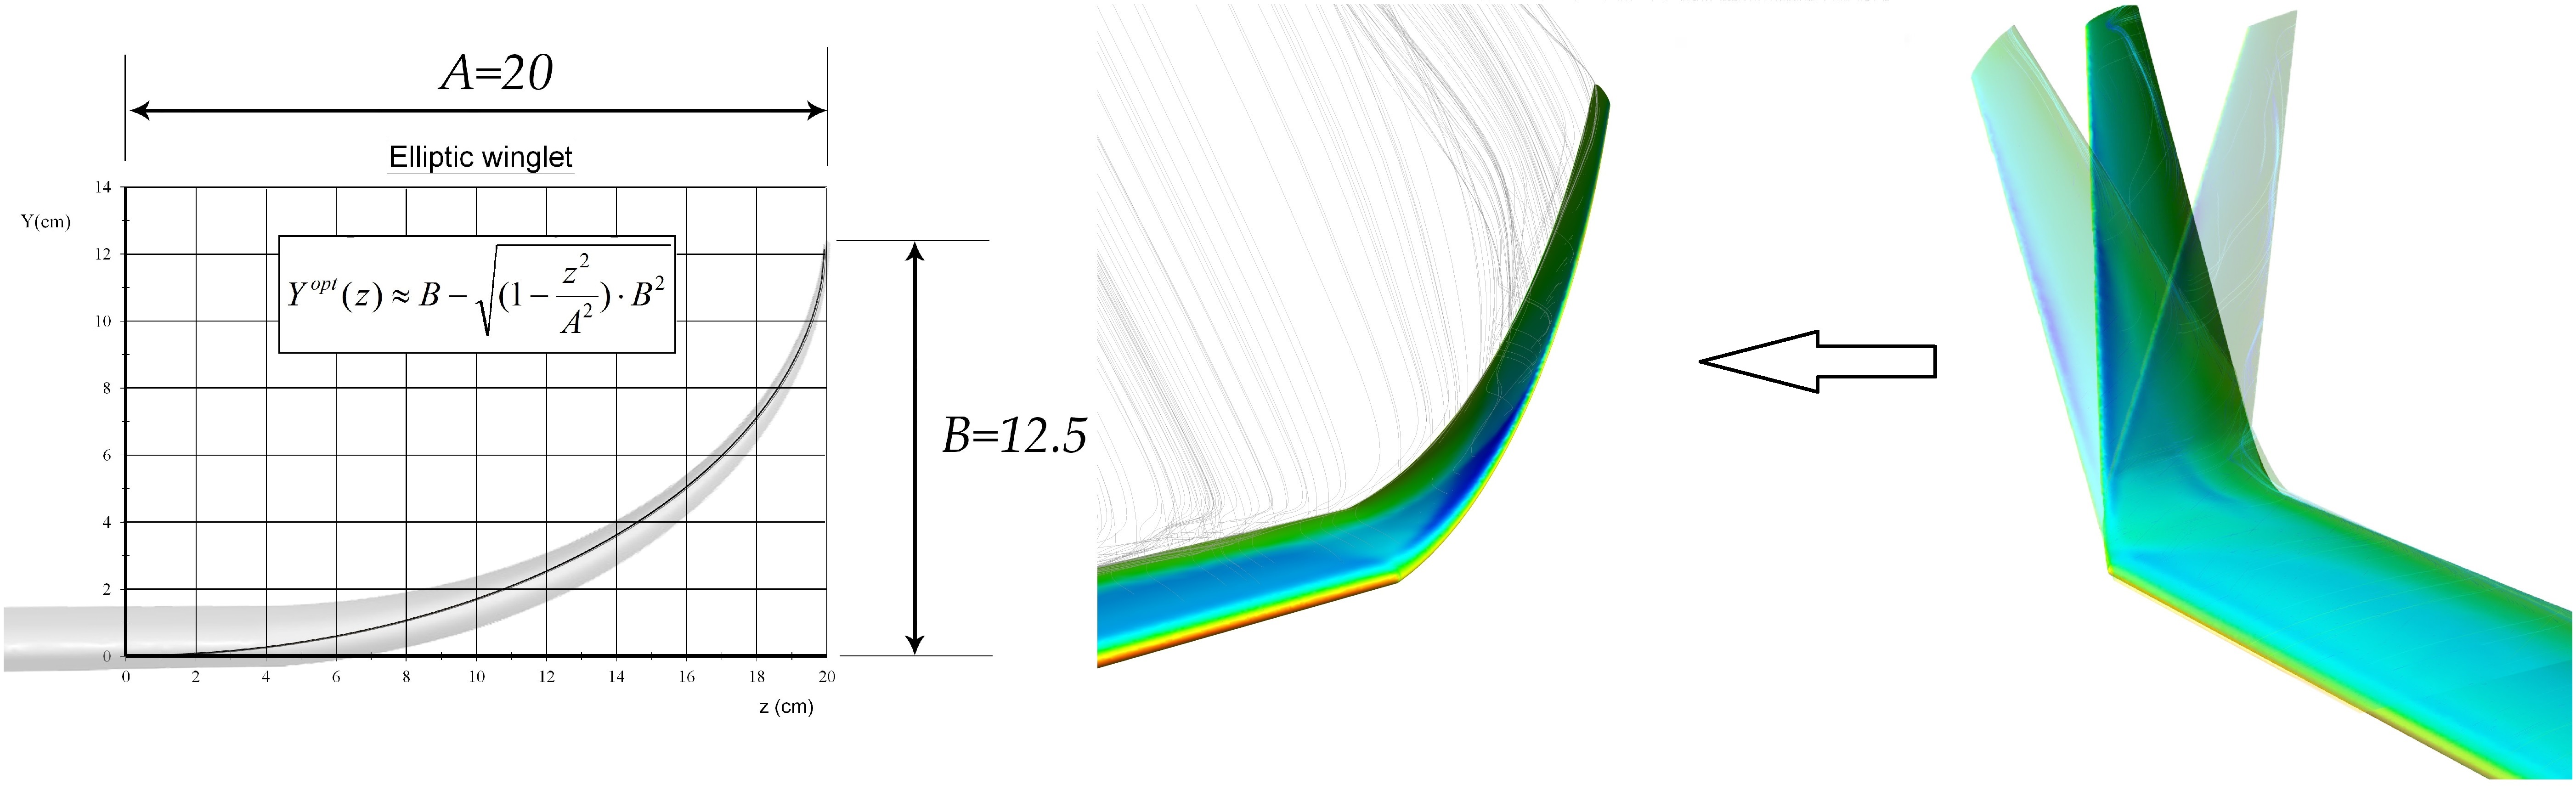 aerodynamic analysis on winglets This paper describes the experimental and computational work carried at the university facility the experimental winglet model made of medium density fiber (mdf) board while computational.